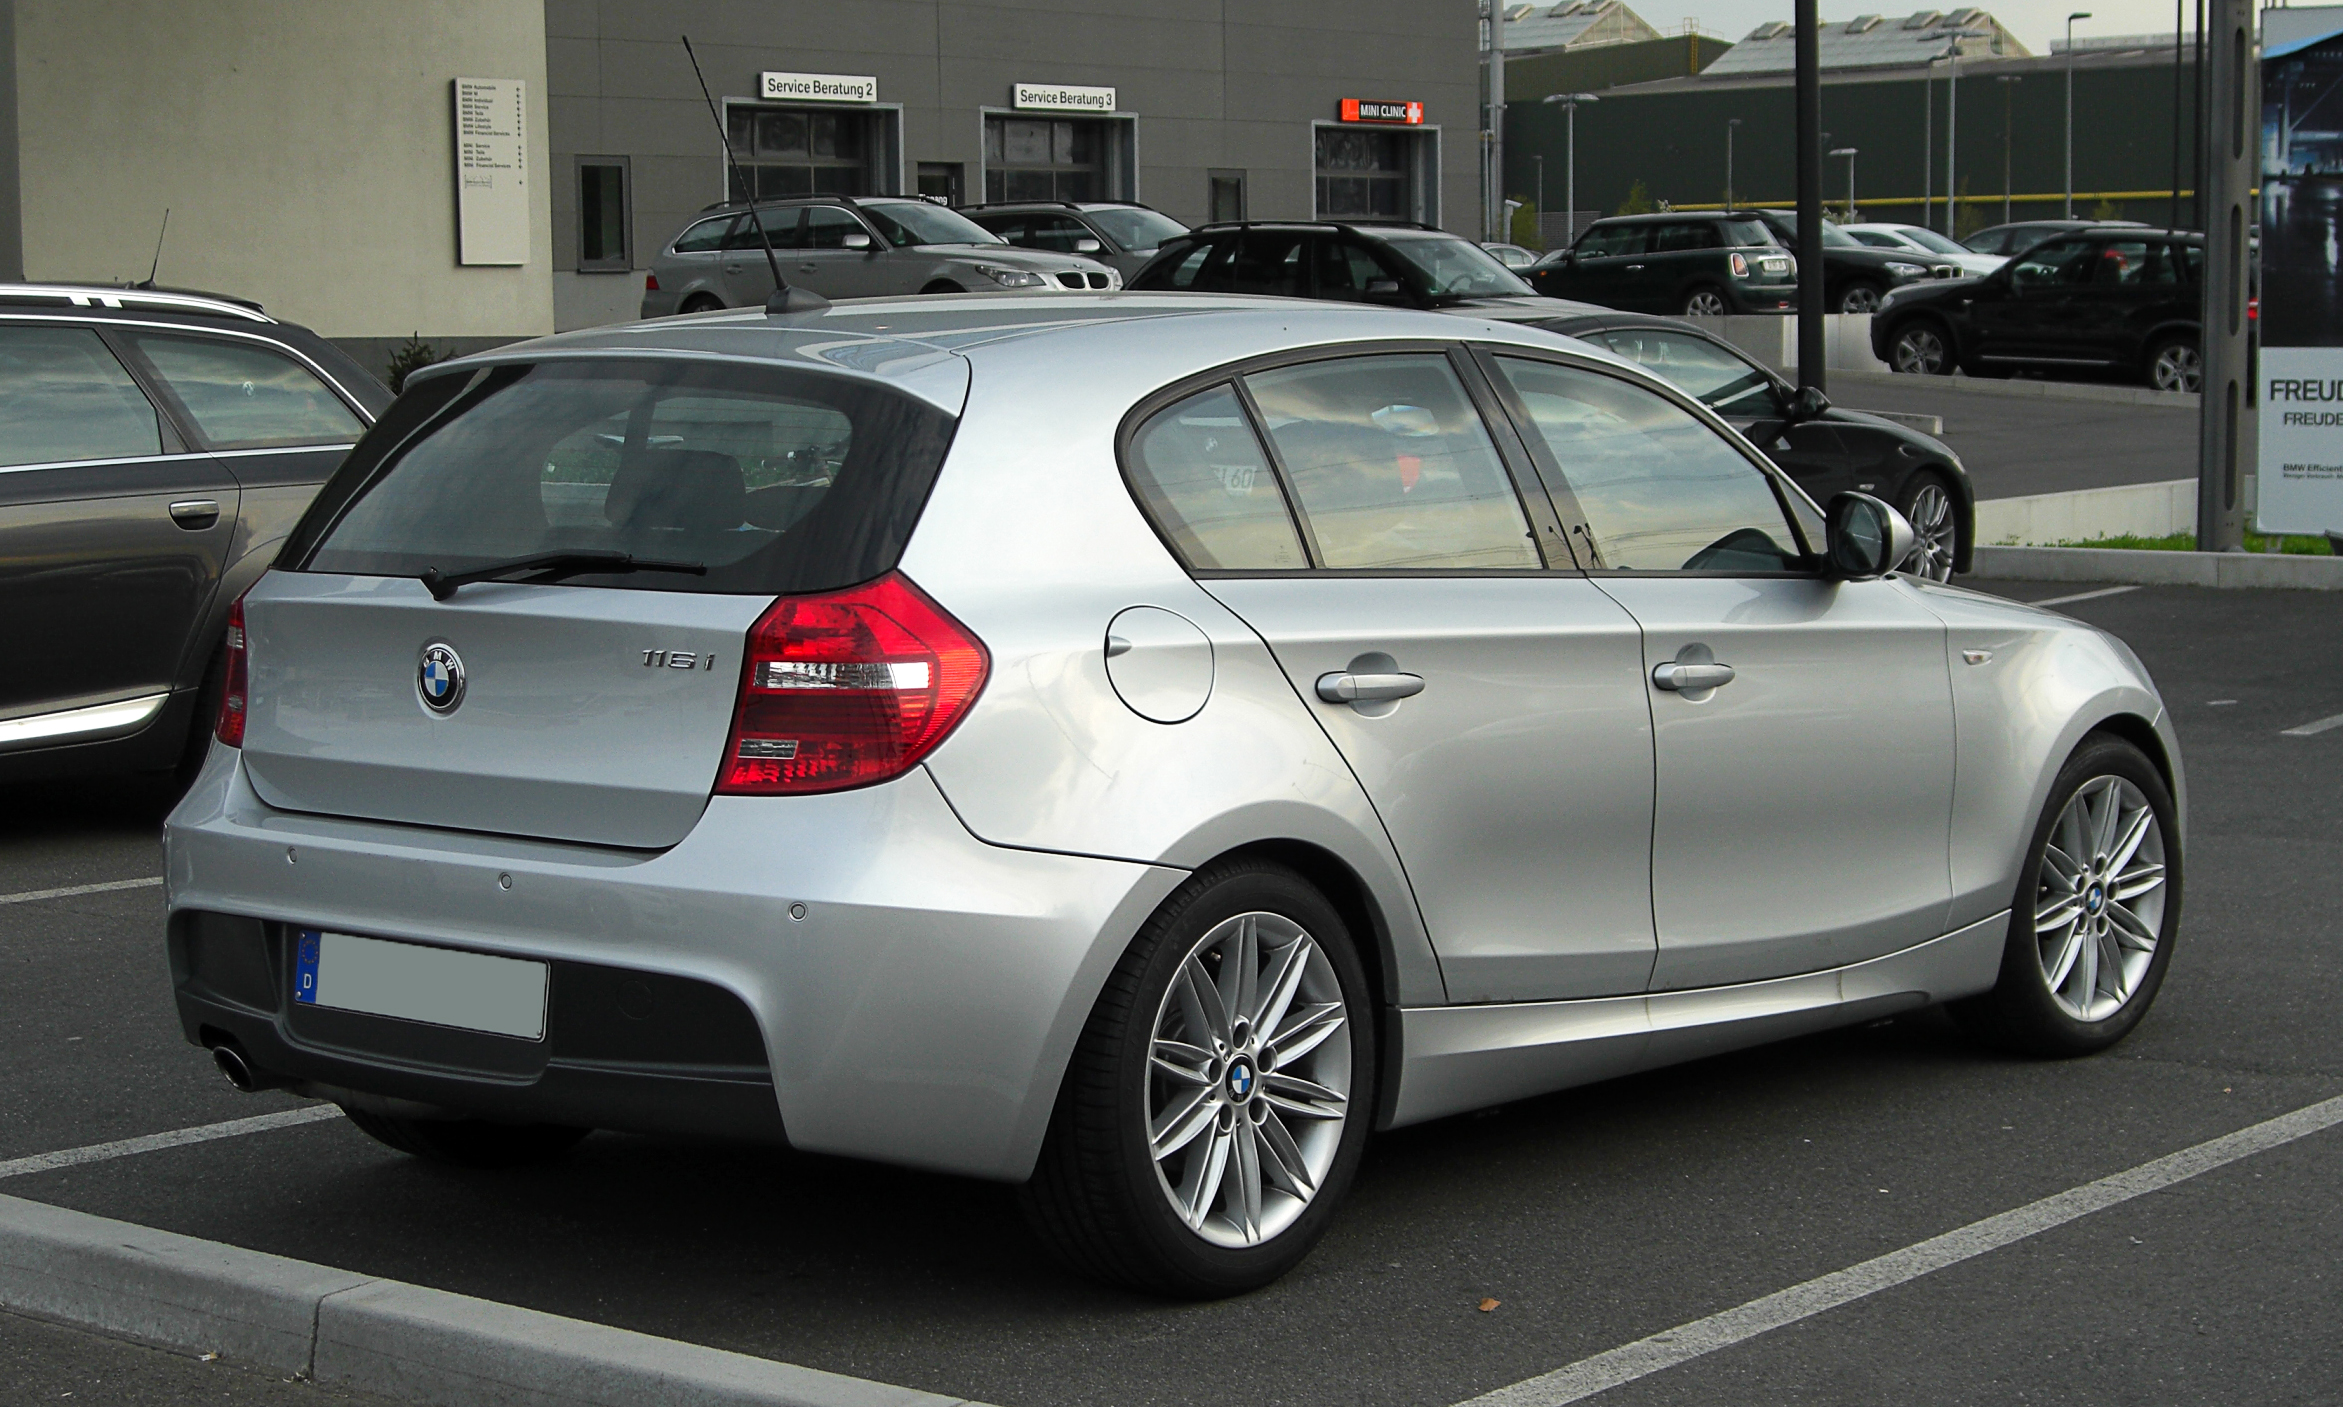 file bmw 116i m sportpaket e87 facelift heckansicht 16 april 2011 d. Black Bedroom Furniture Sets. Home Design Ideas